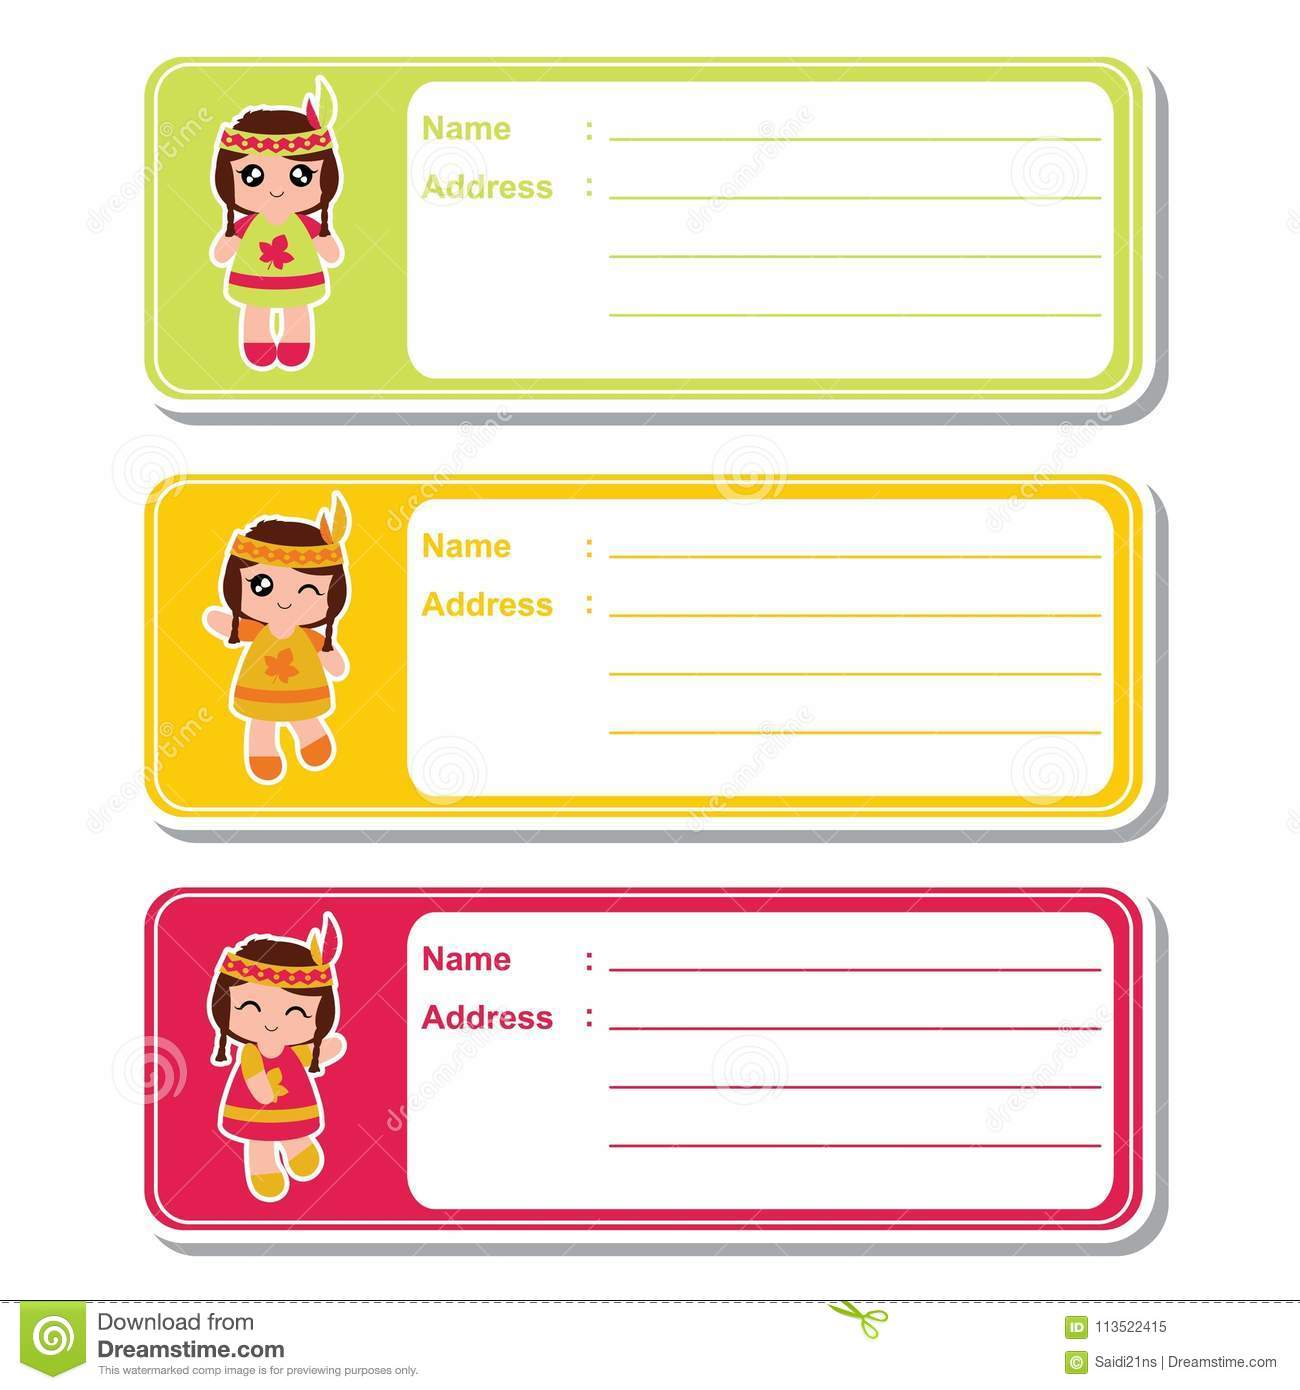 indian girls on colorful background suitable for kid address label